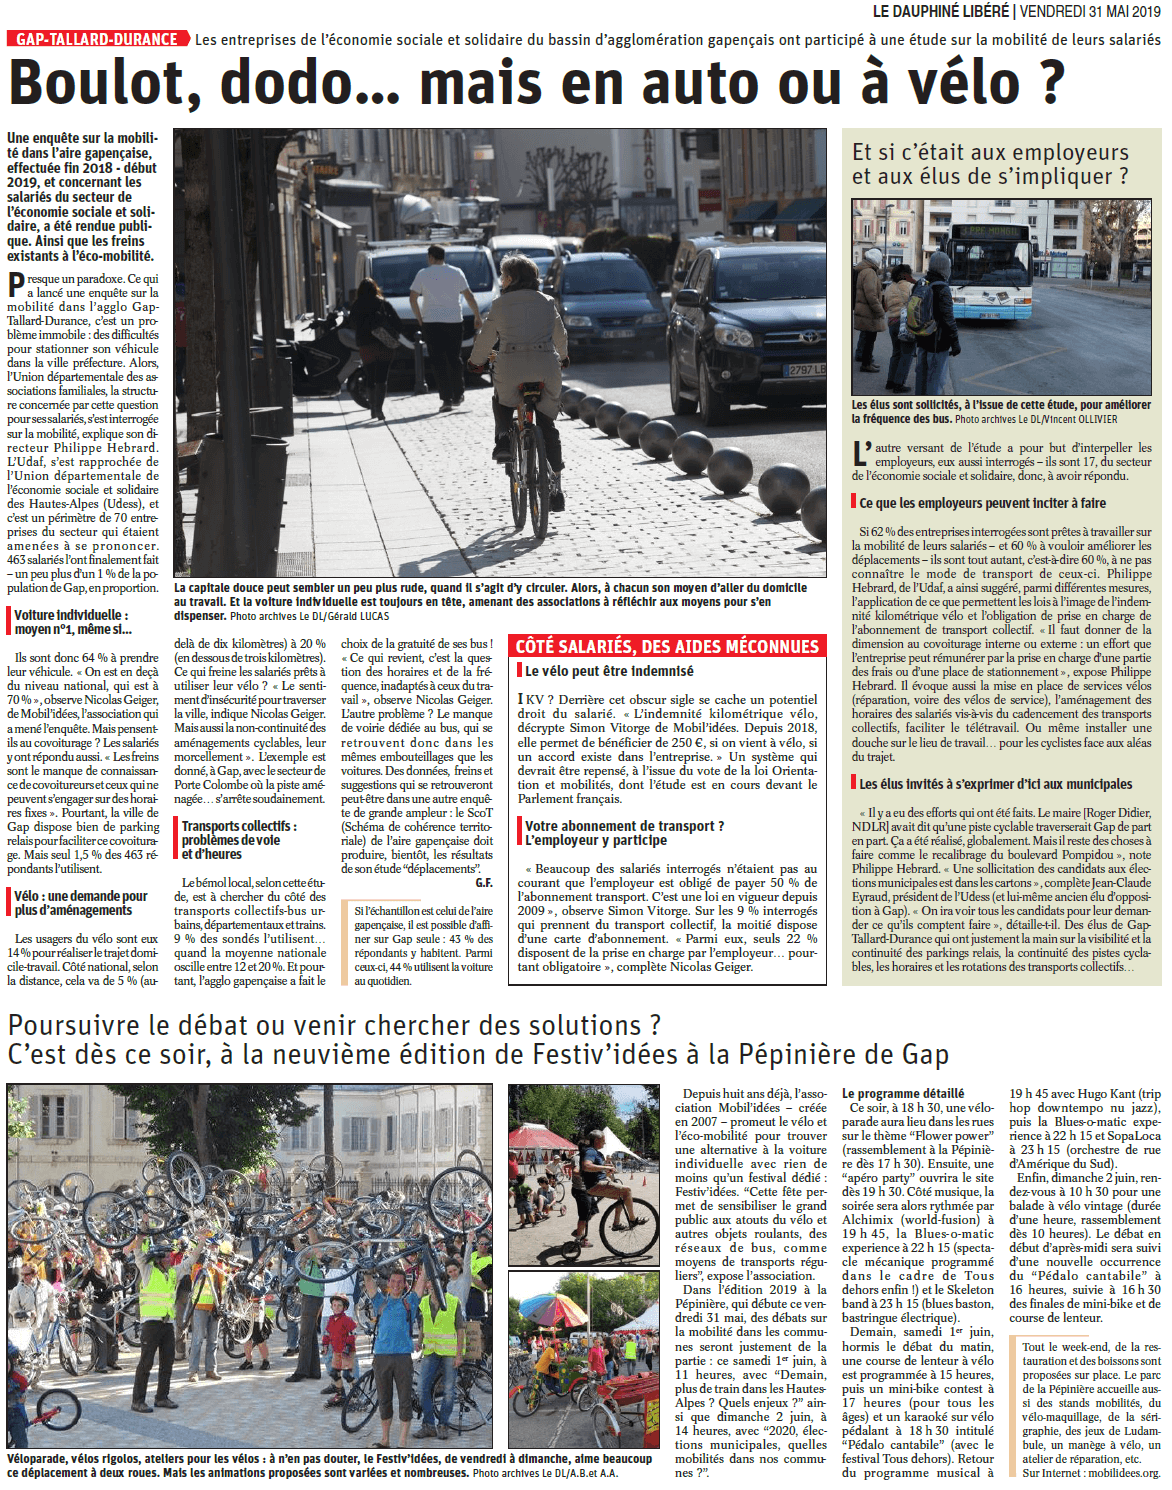 Article du DL paru le 31 mai 2019